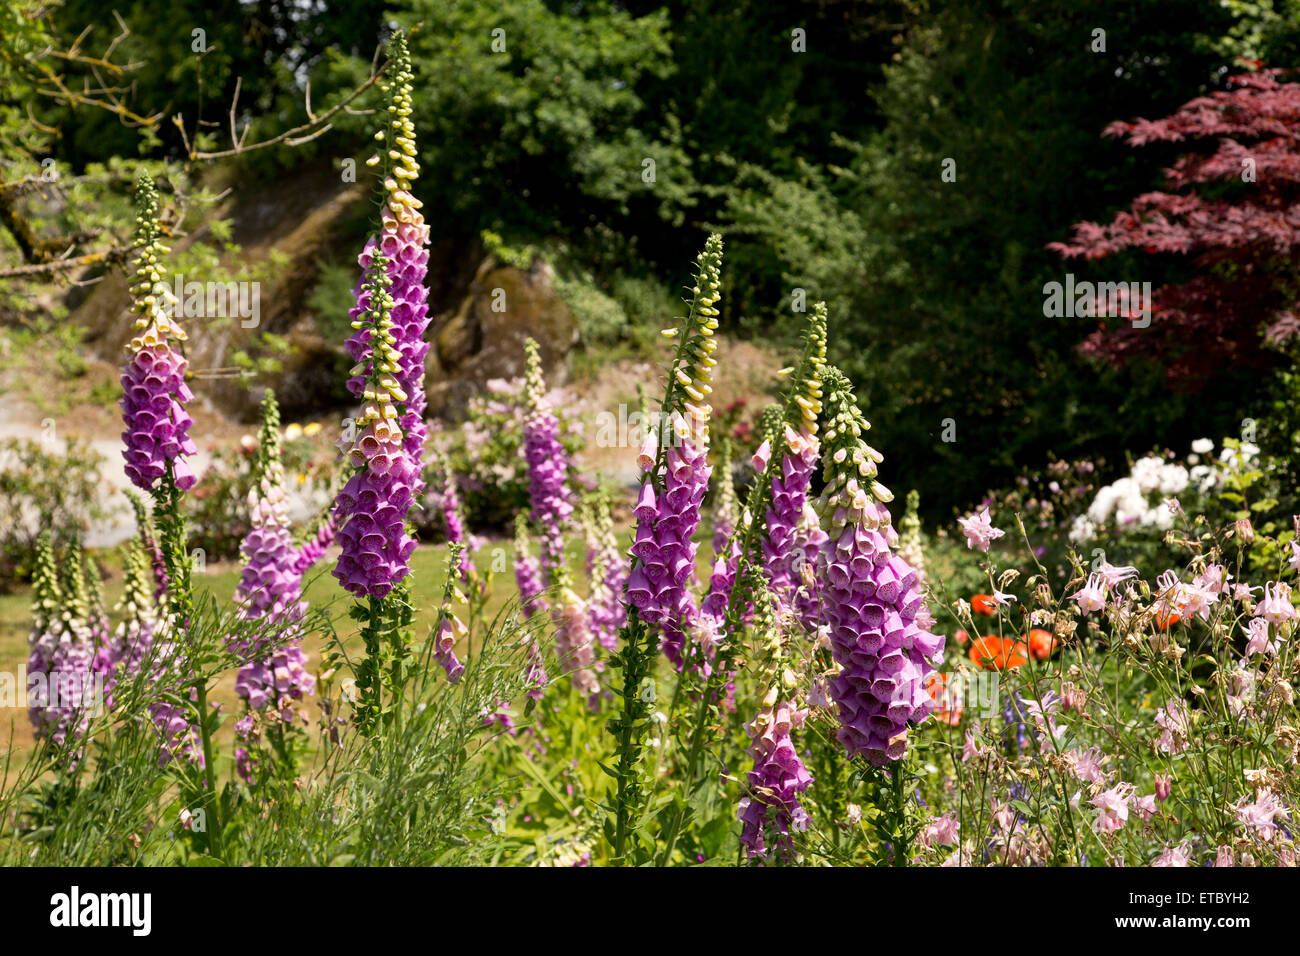 Pink Foxgloves in a cottage garden - Stock Image